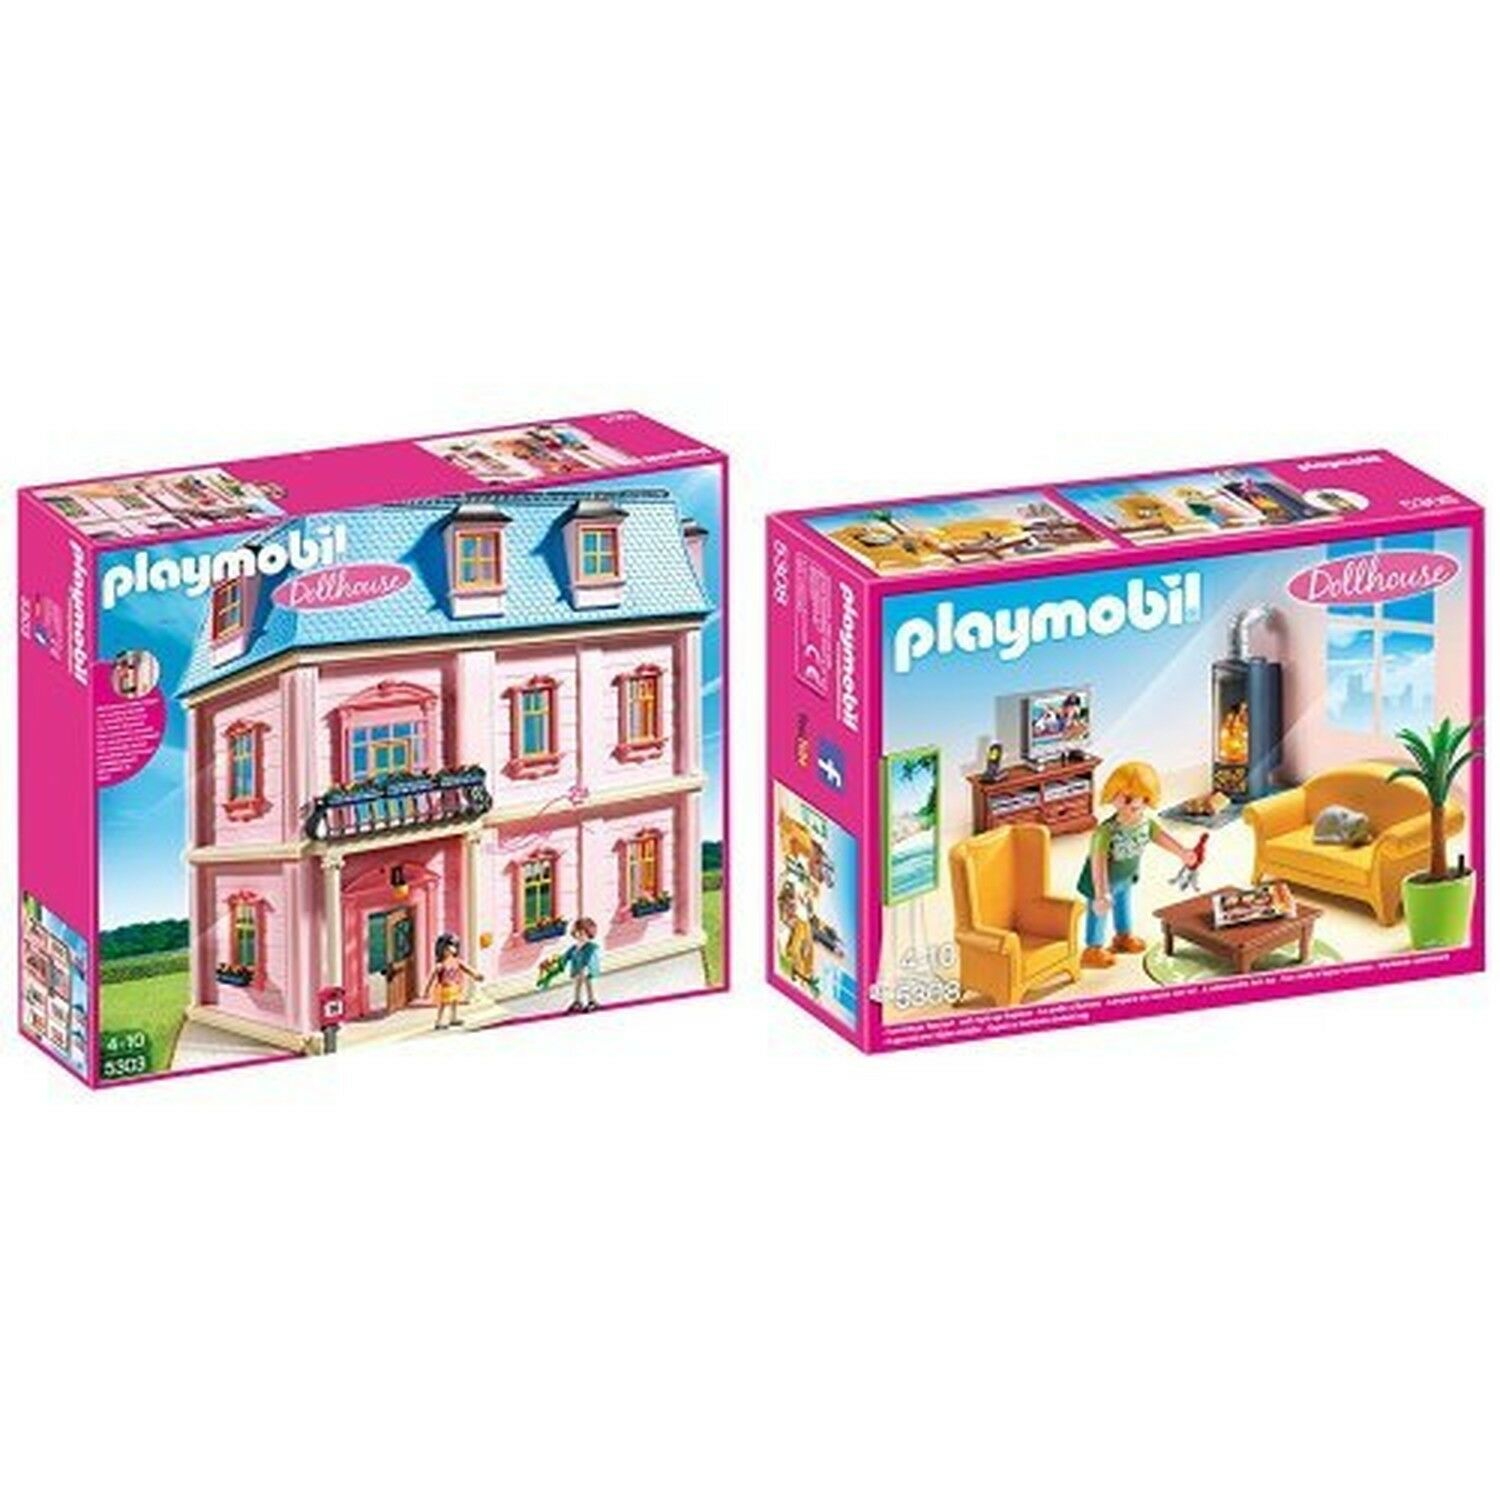 Playmobil Deluxe Doll House and Living Room Bundle